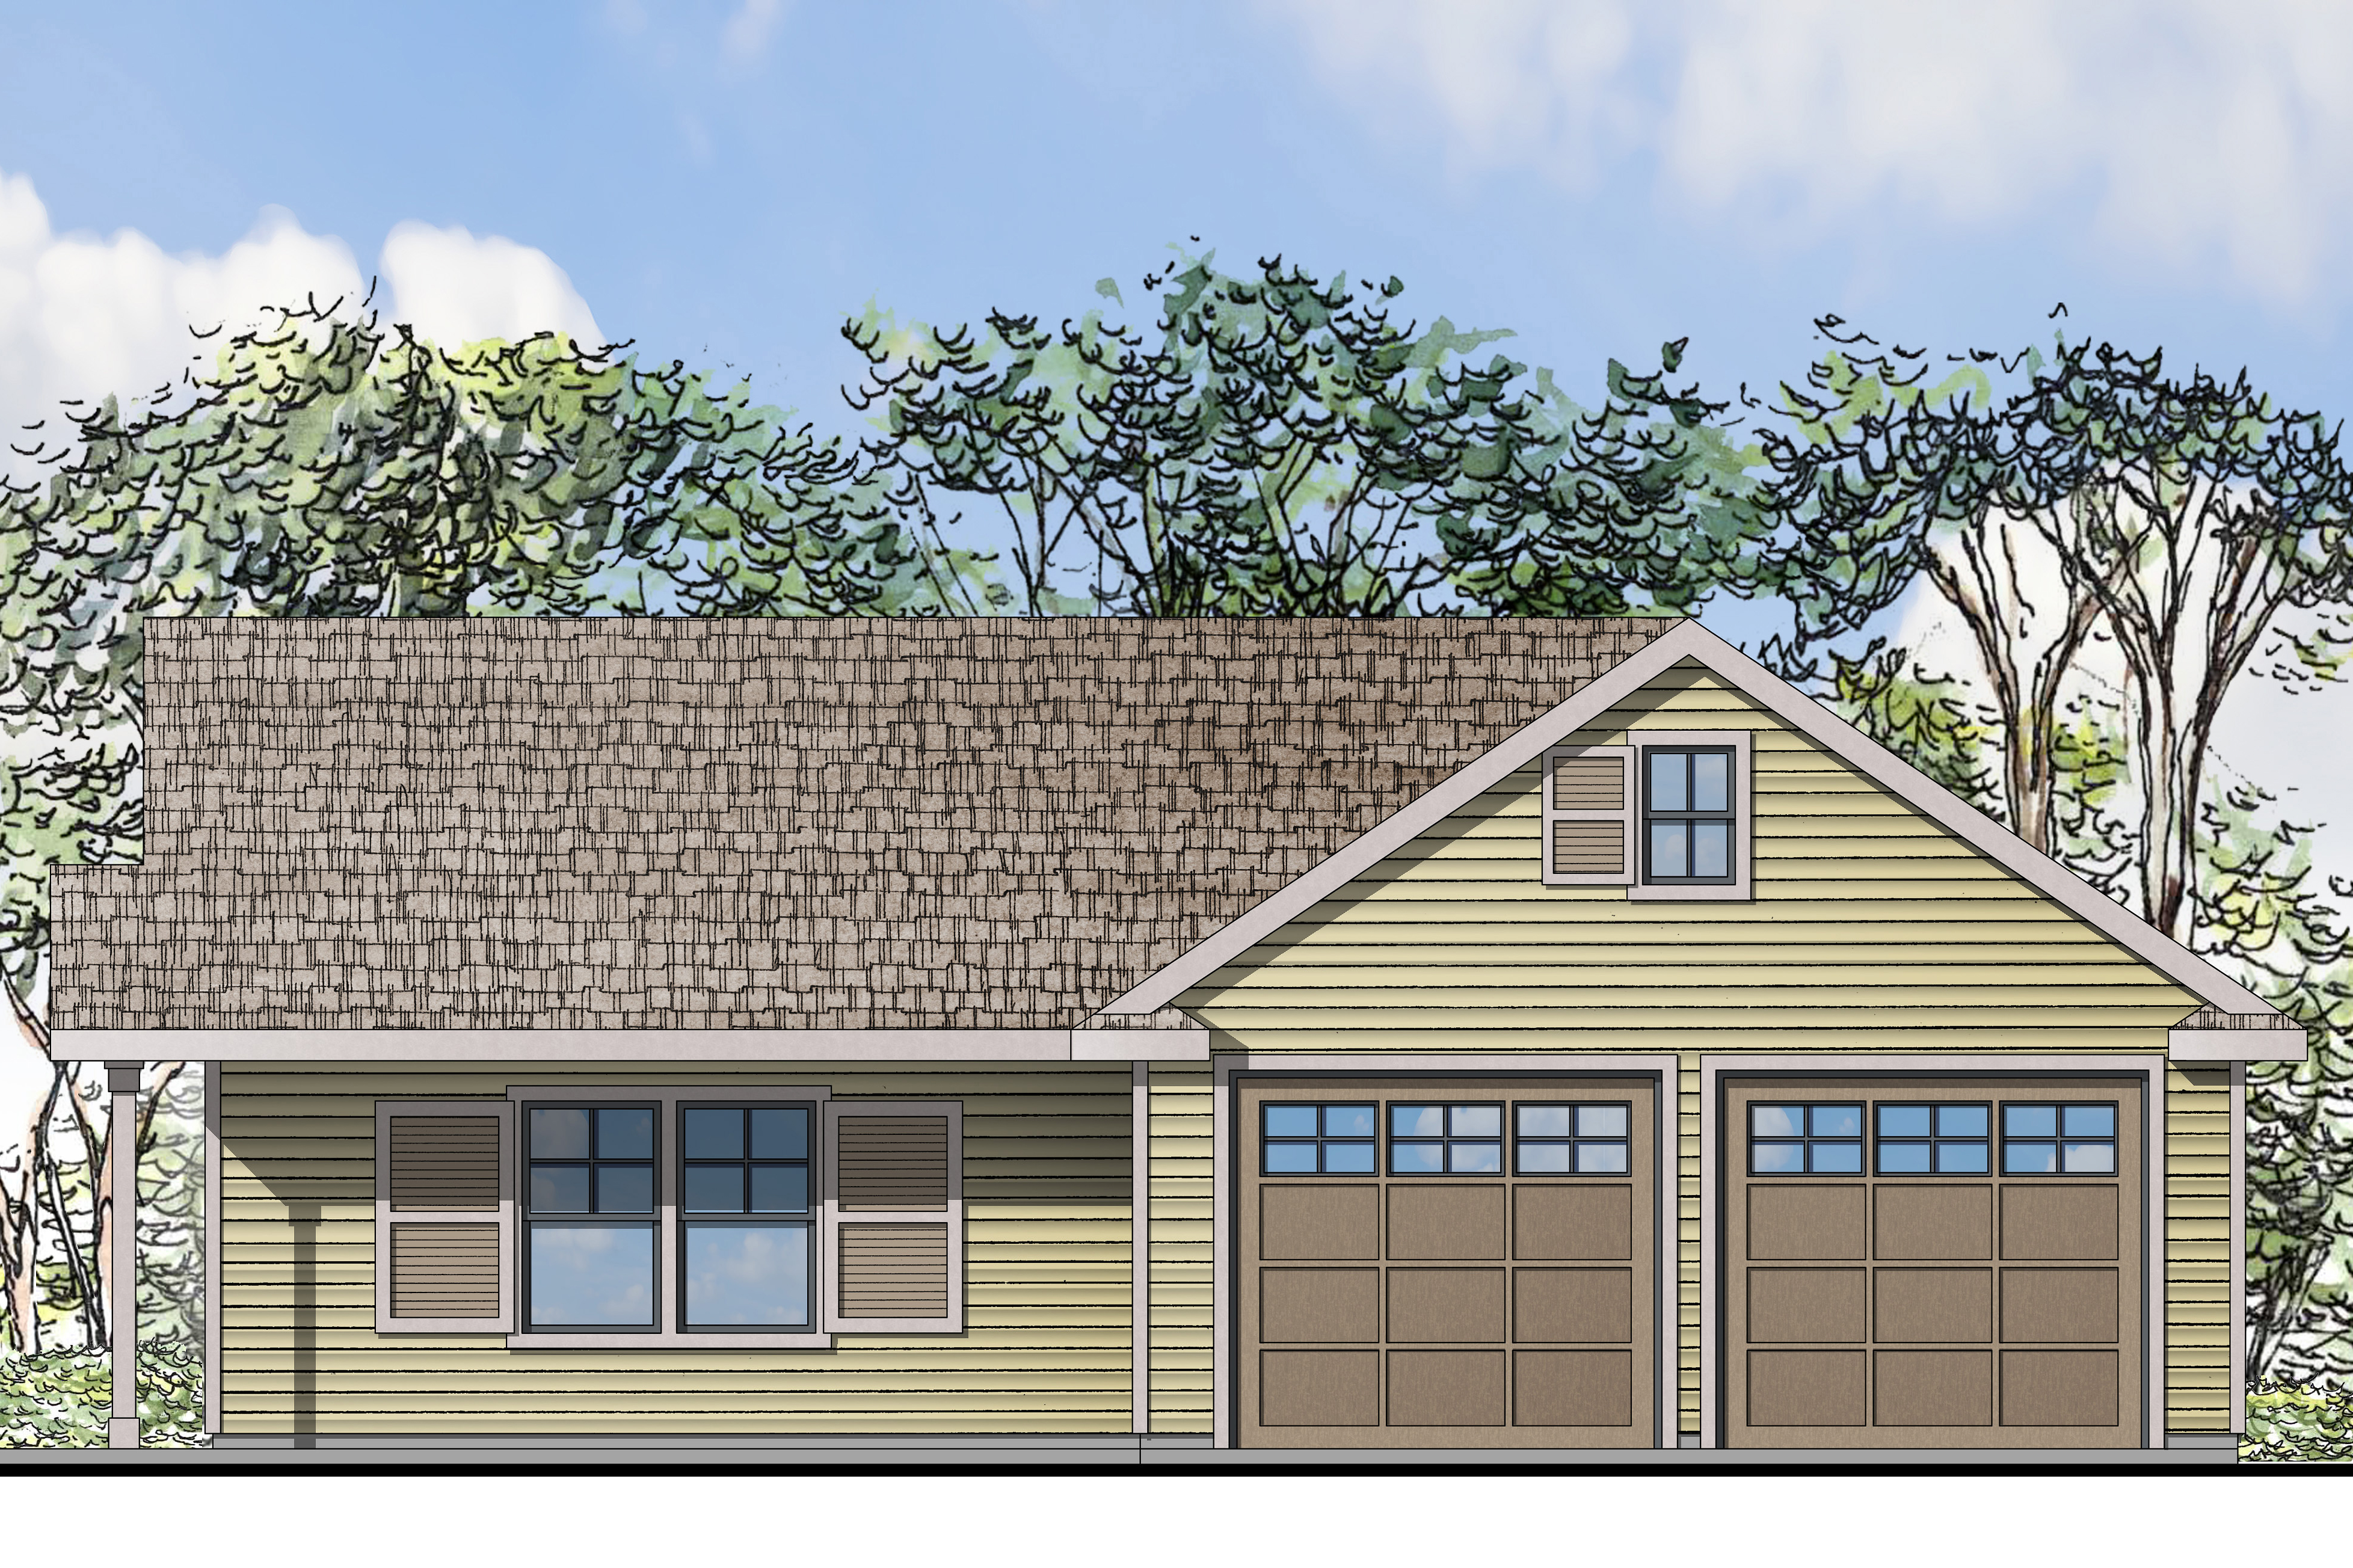 Traditional House Plans Garage W Living 20 116